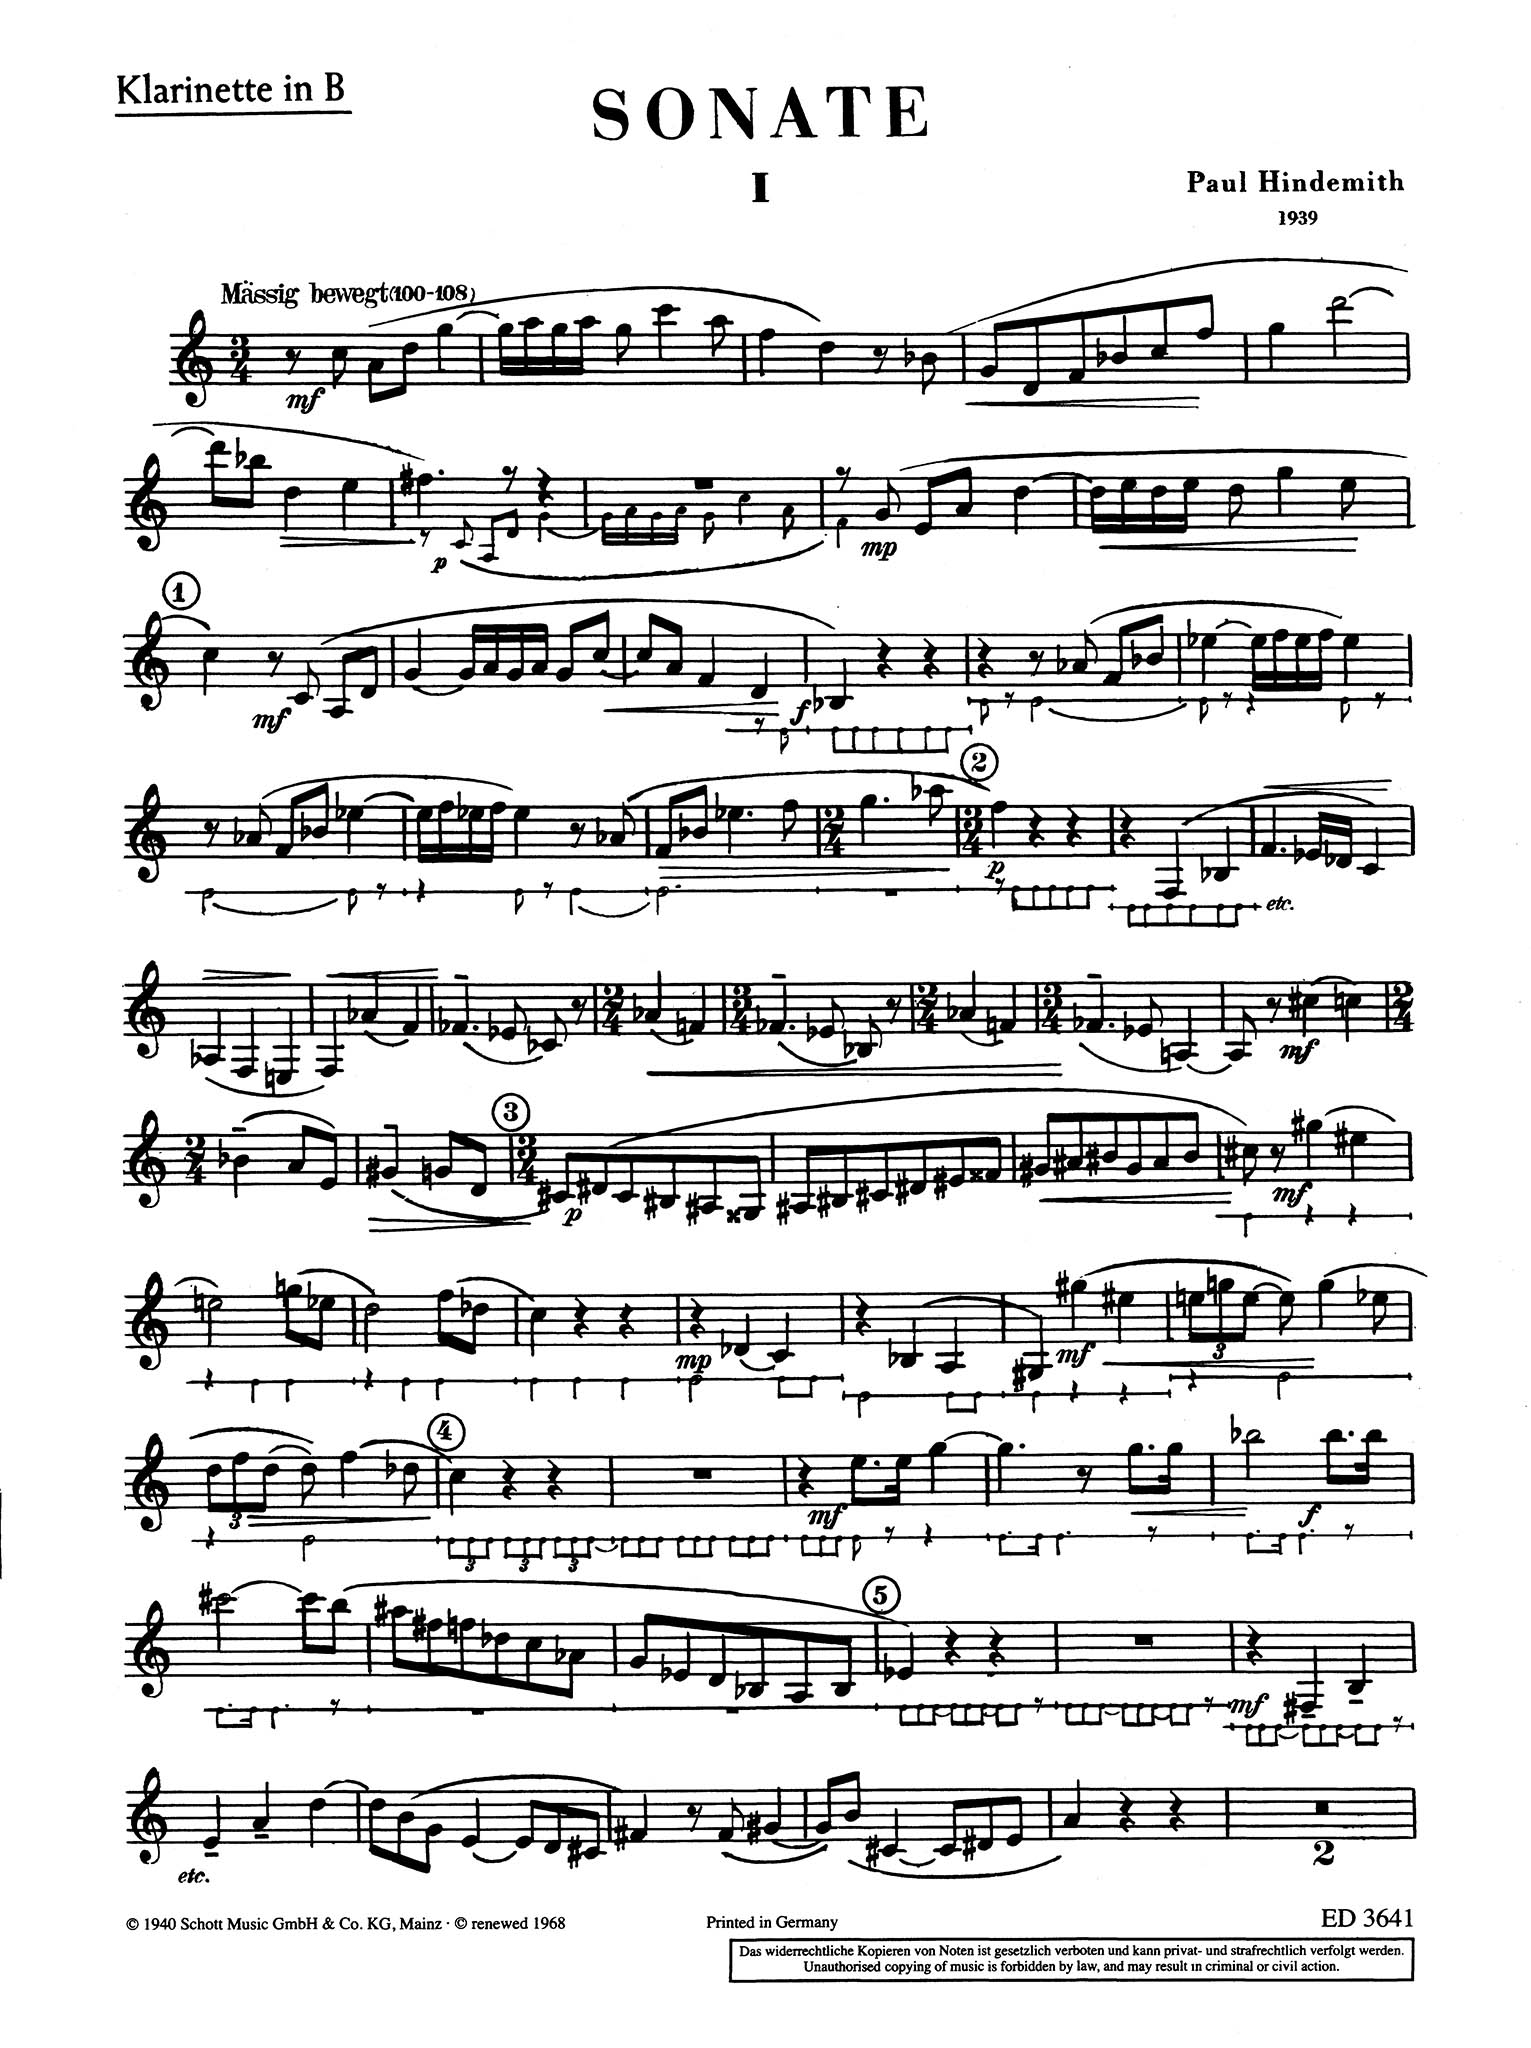 Sonata in B-flat Major Clarinet part